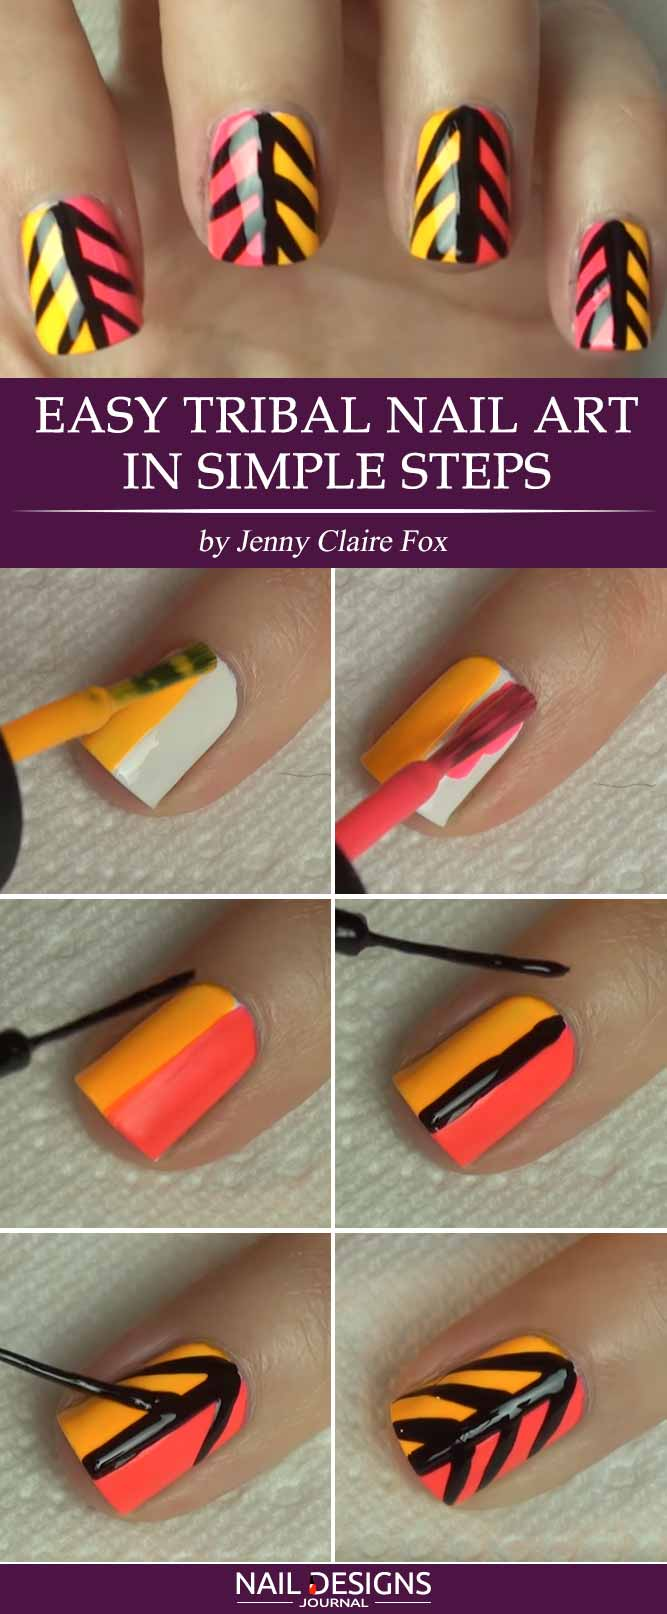 Try these easy nail designs naildesignsjournal easy tribal nail art in simple steps prinsesfo Gallery